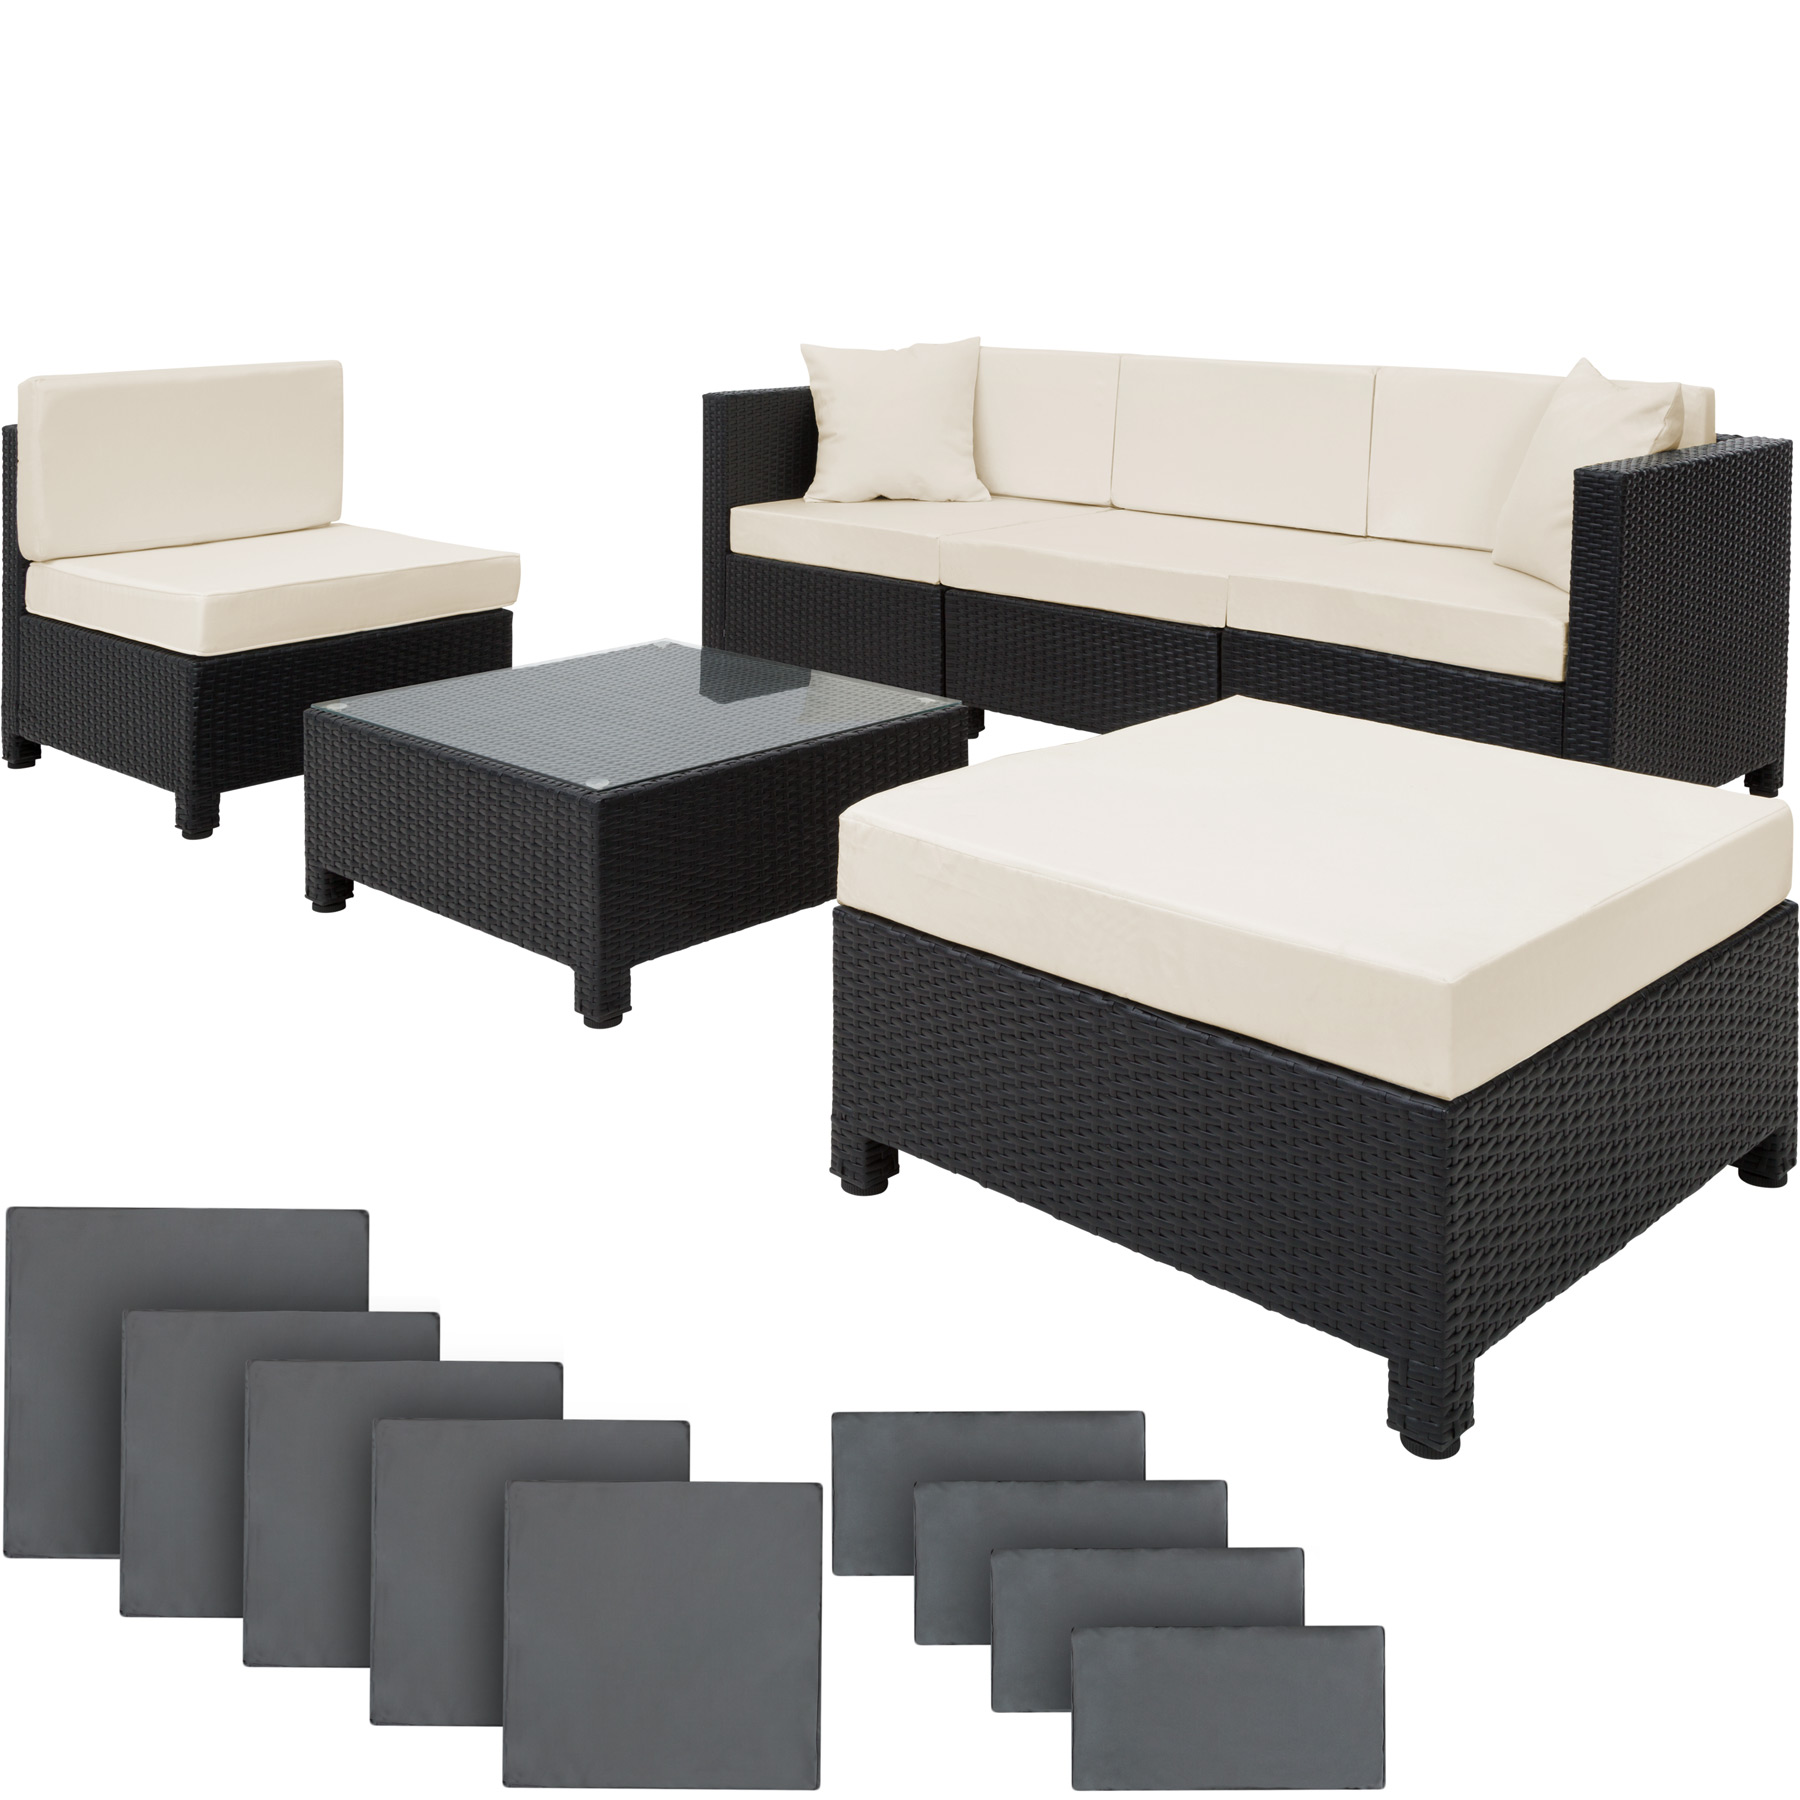 Luxury Rattan Aluminium Garden Furniture Sofa Set Outdoor Wicker Black Ebay